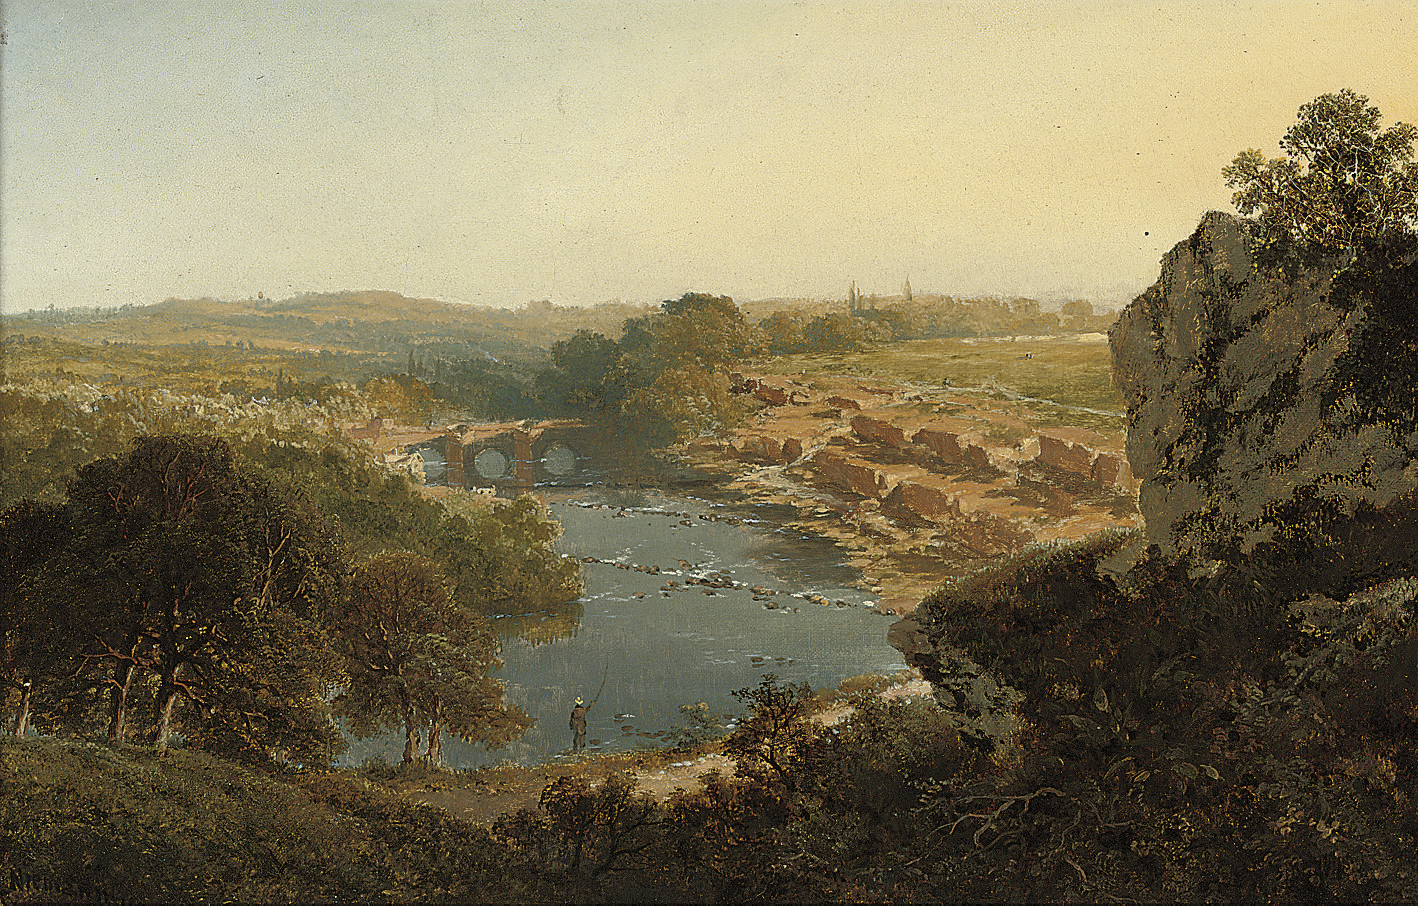 An angler in an extensive river landscape